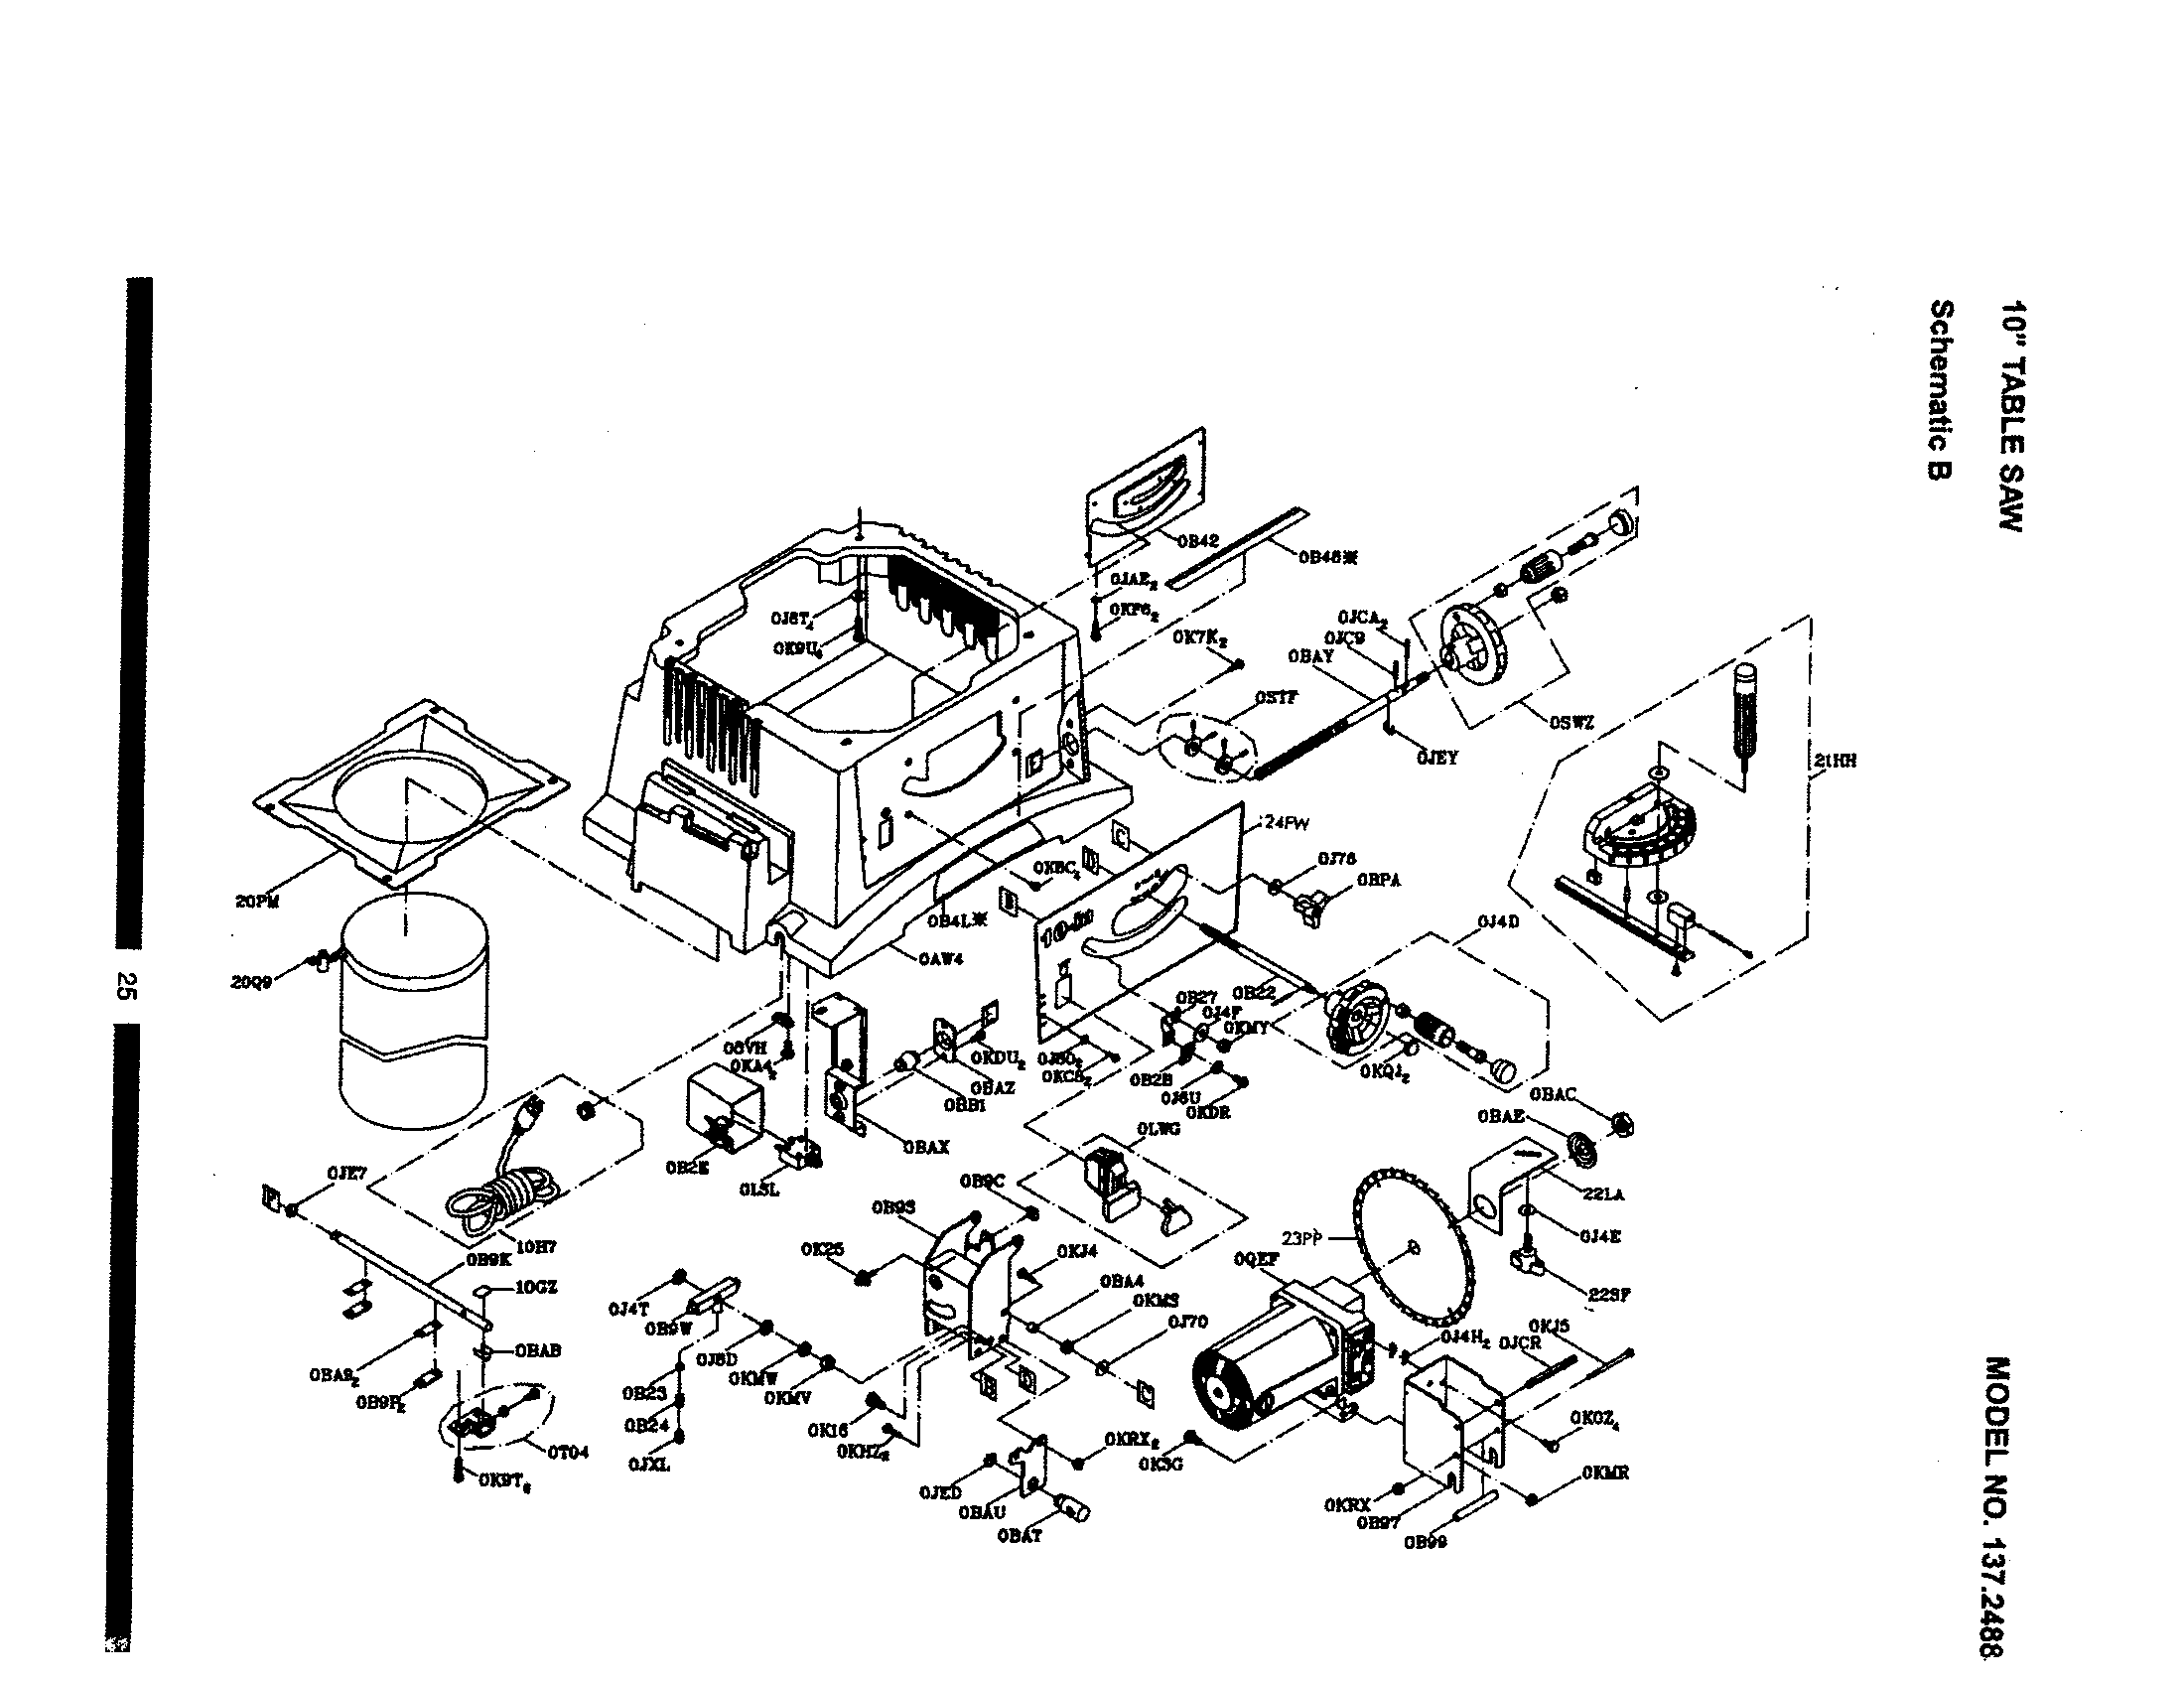 Wiring Diagram For Craftsman Table Saw